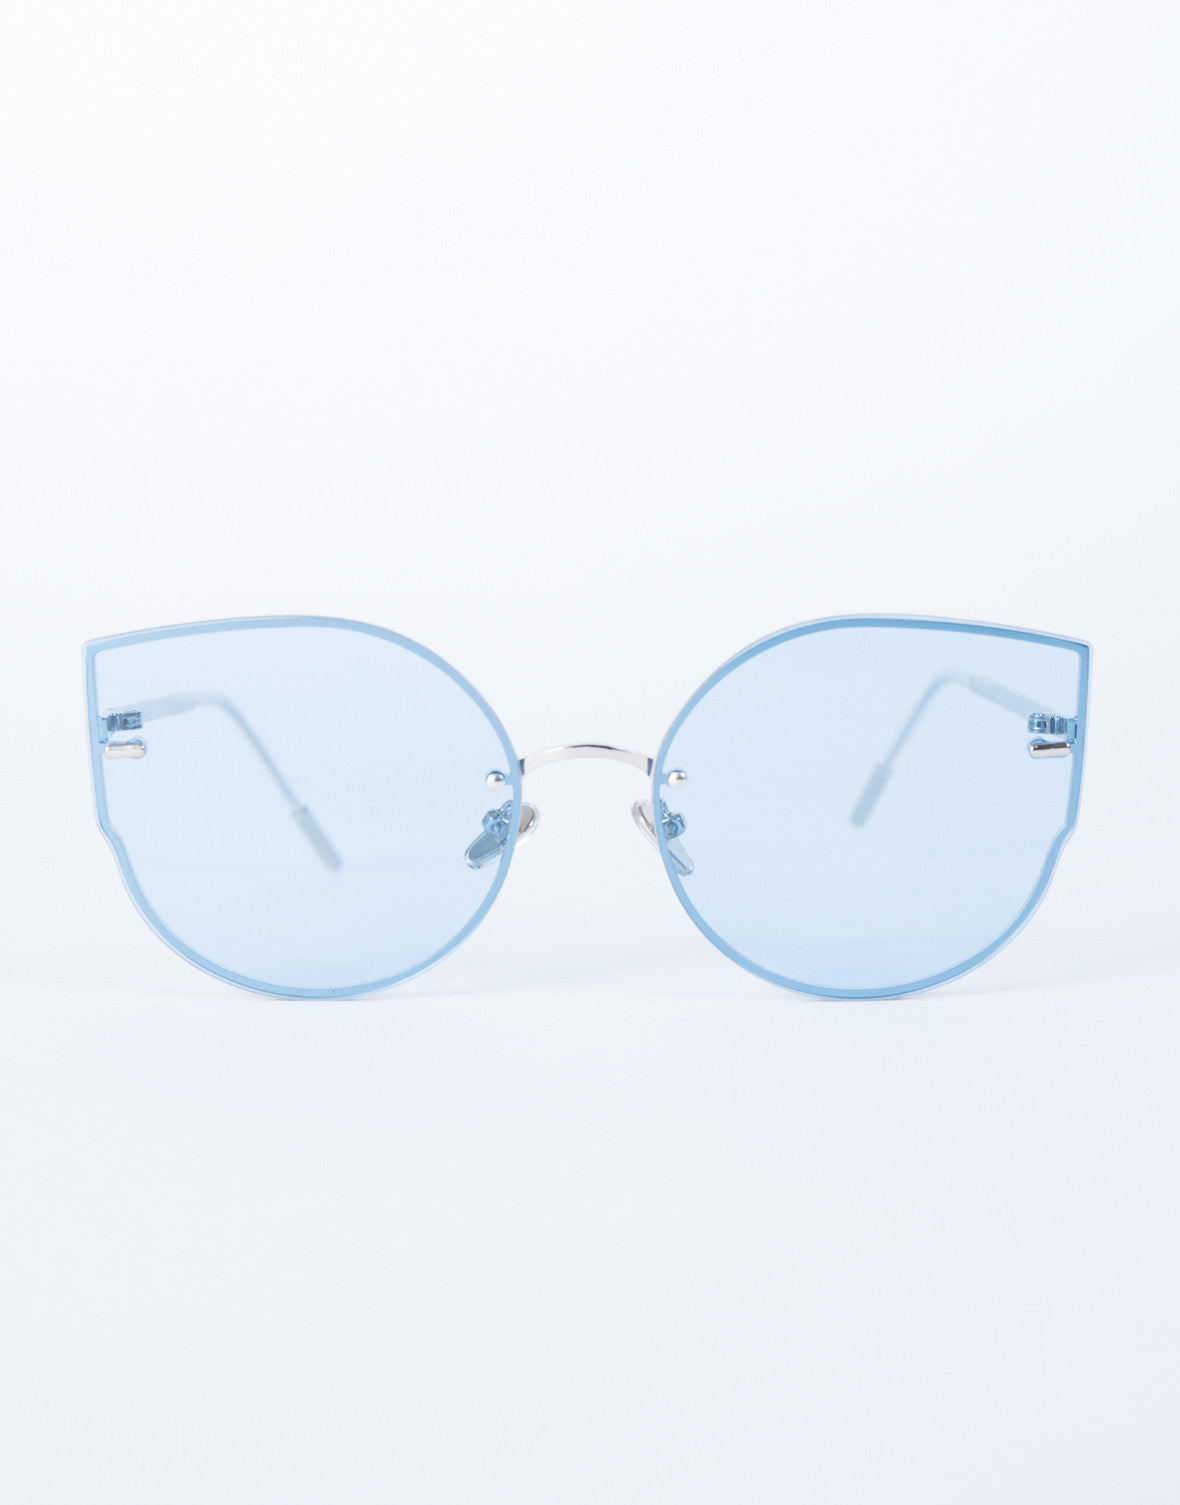 Blue Summer Fun Sunnies - Front View